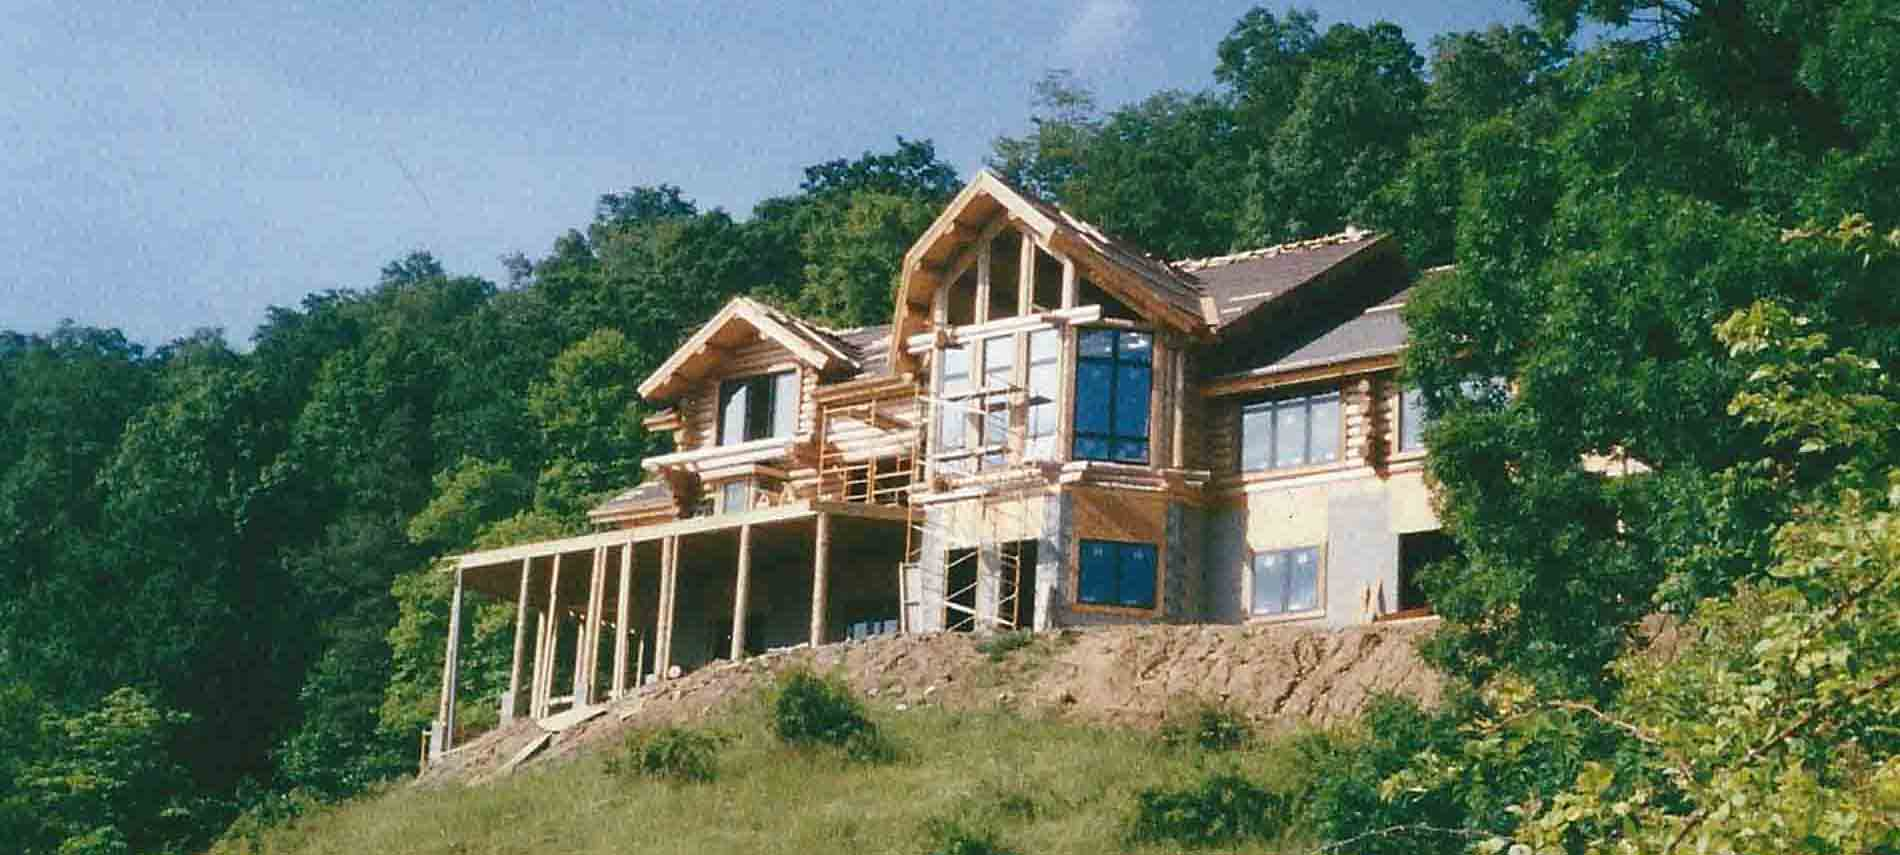 Lodge under constuction